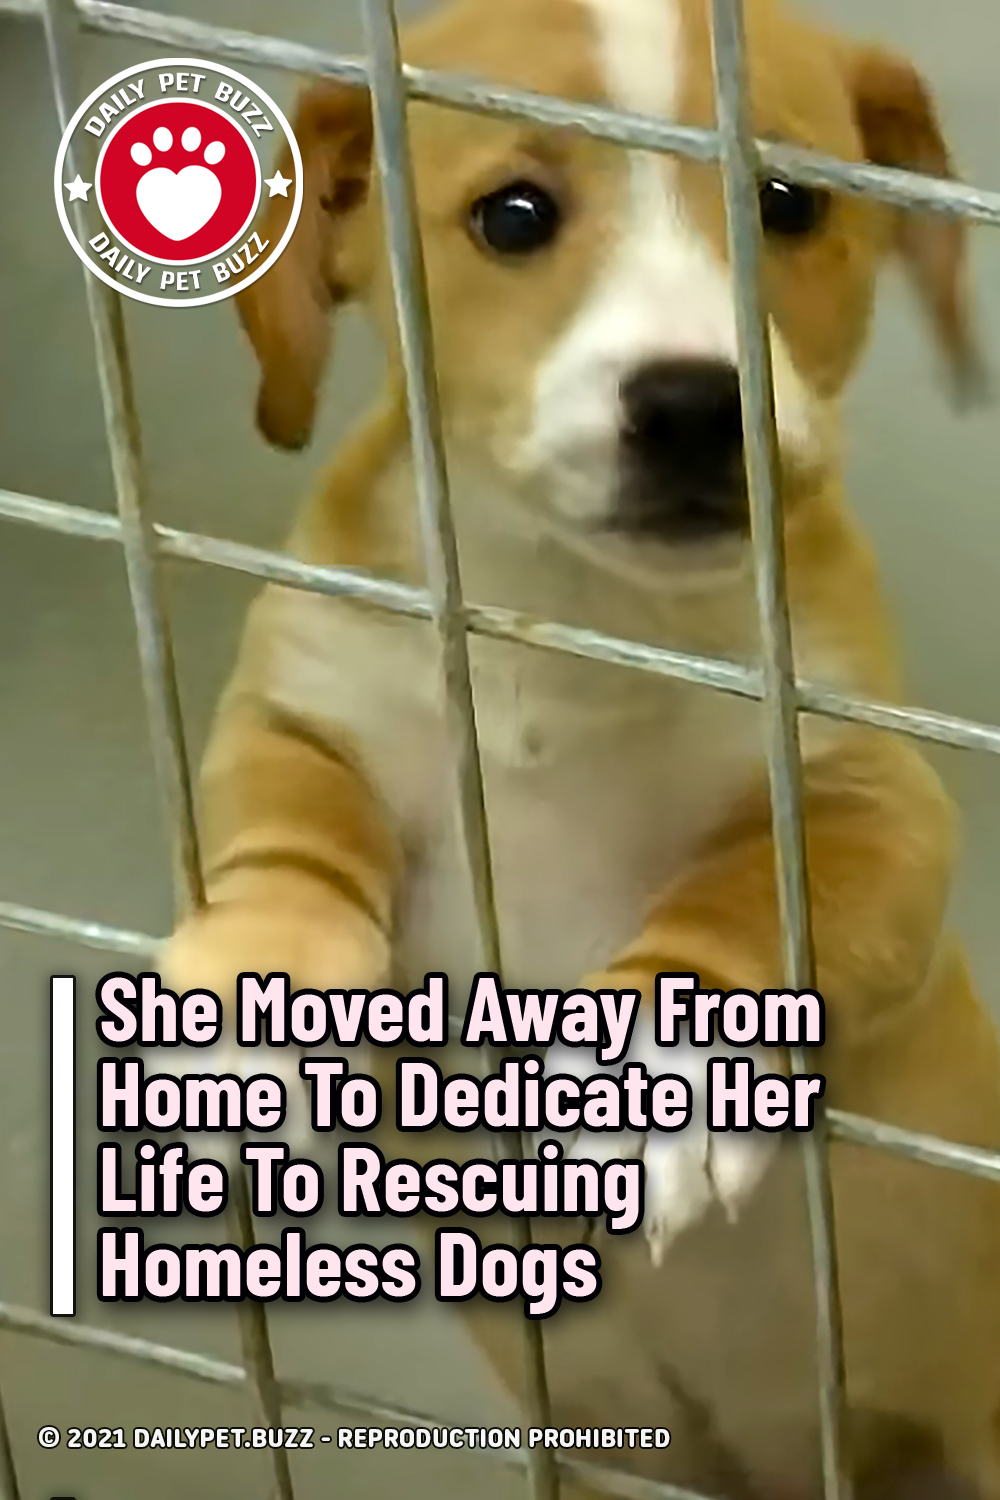 She Moved Away From Home To Dedicate Her Life To Rescuing Homeless Dogs